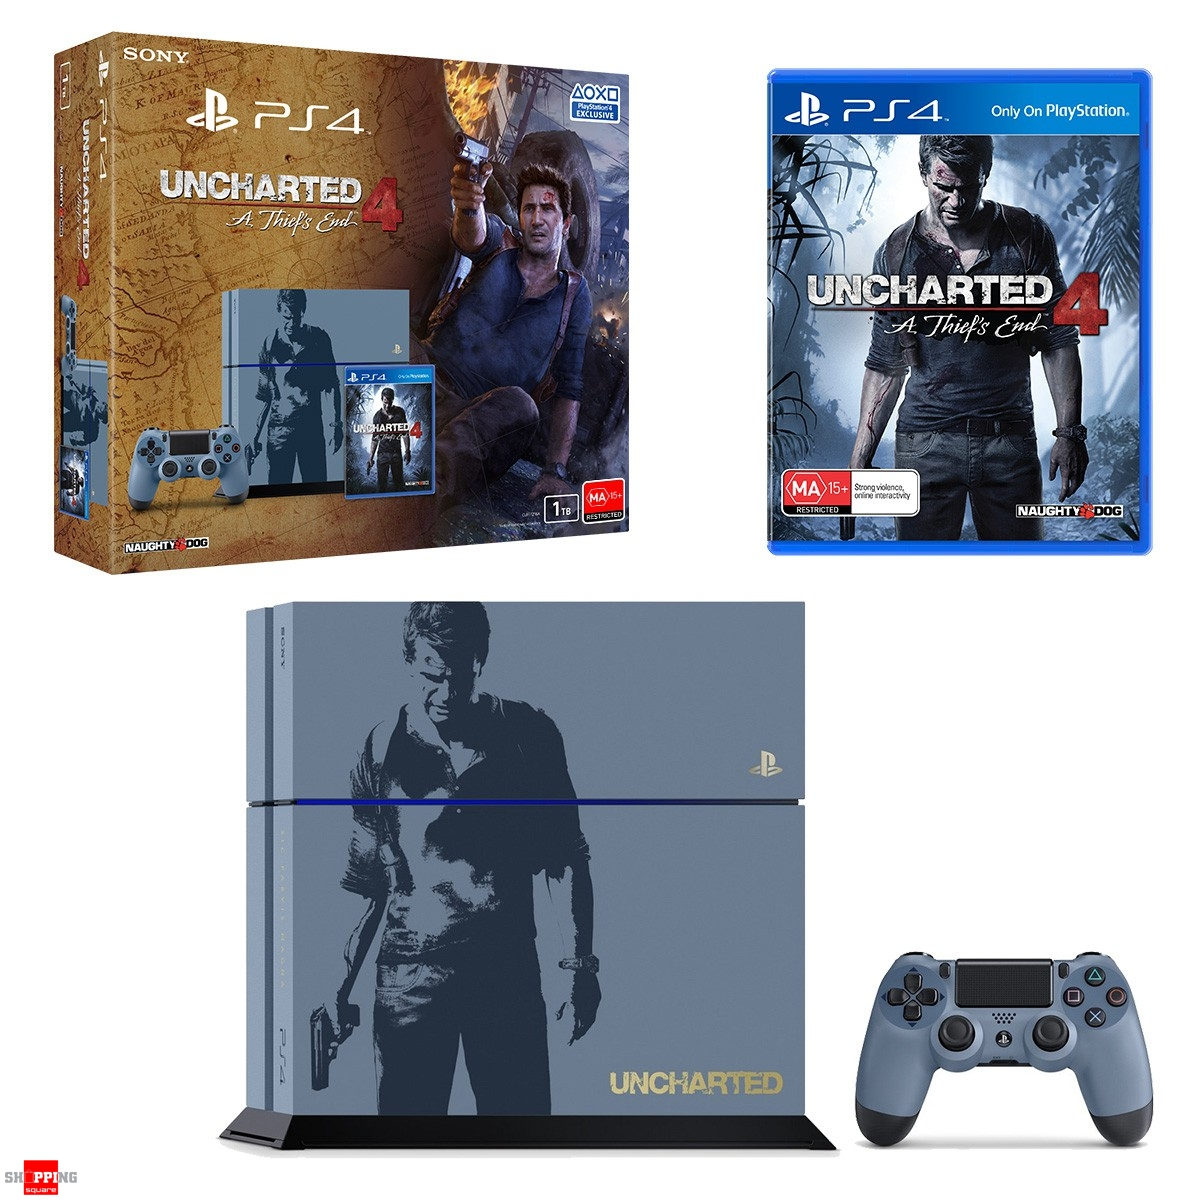 Playstation 4 Ps4 1tb Console Uncharted 4 Limited Edition Bundle